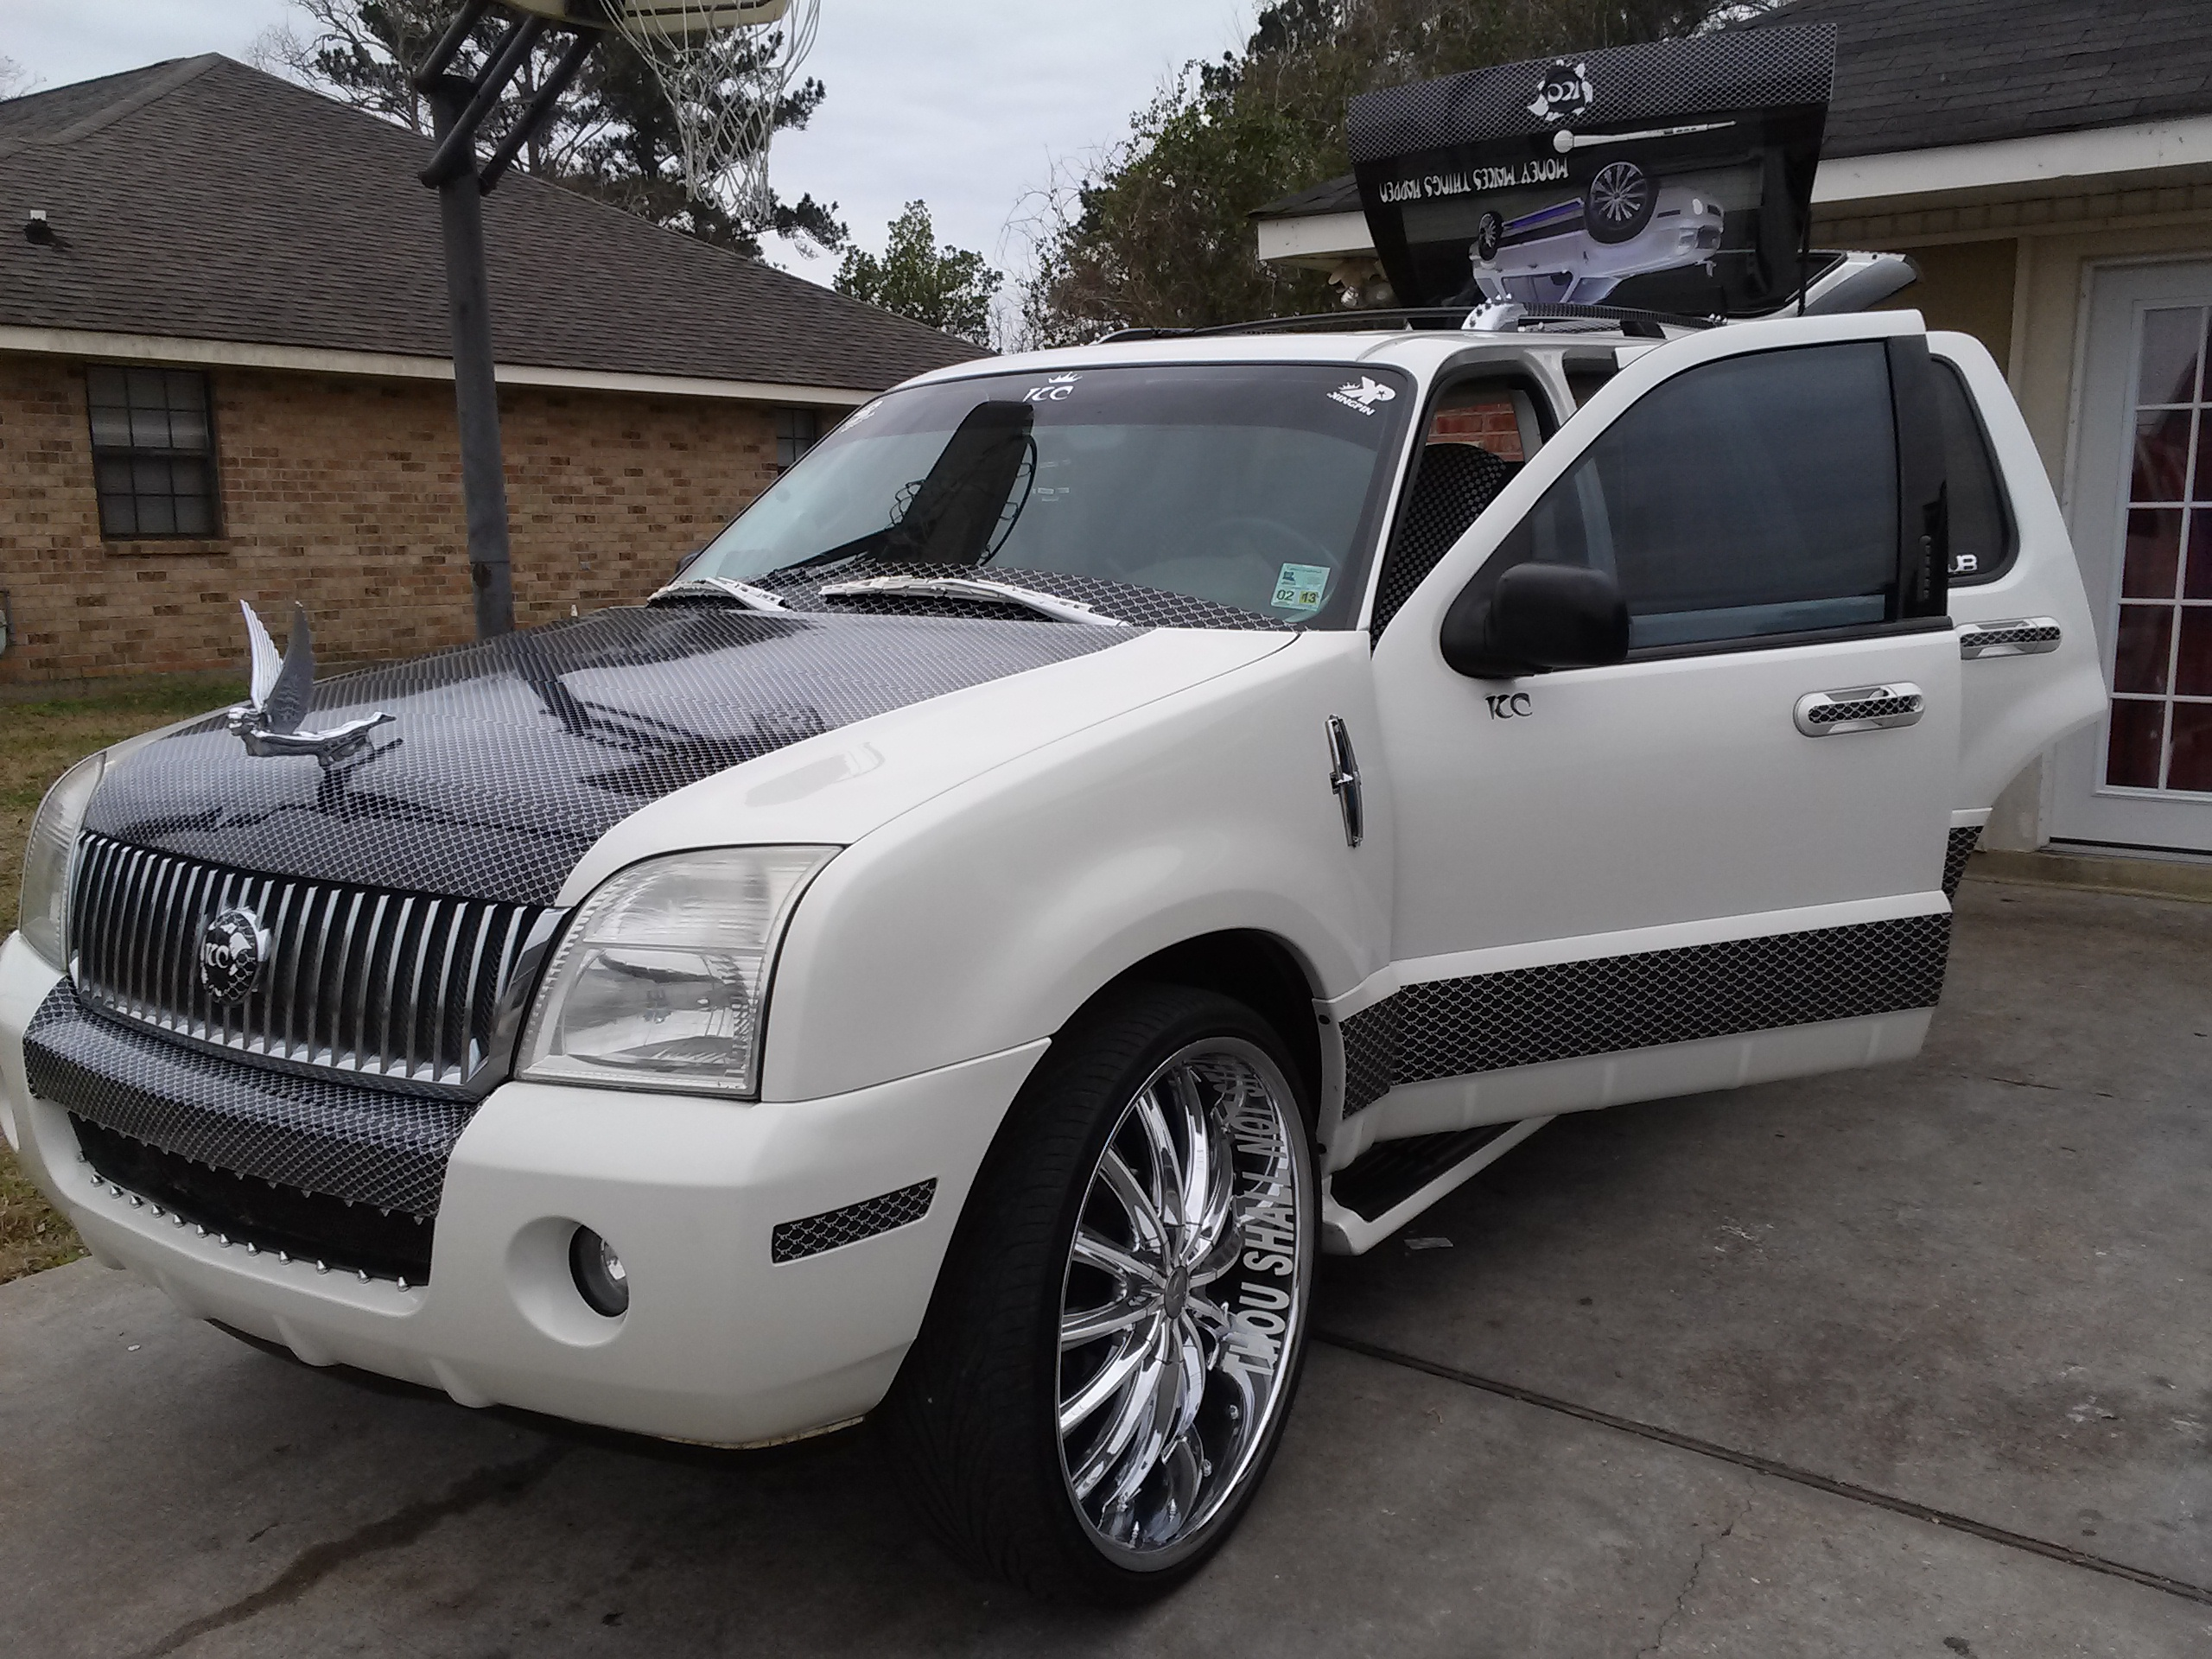 2003 Mercury Mountaineer #18